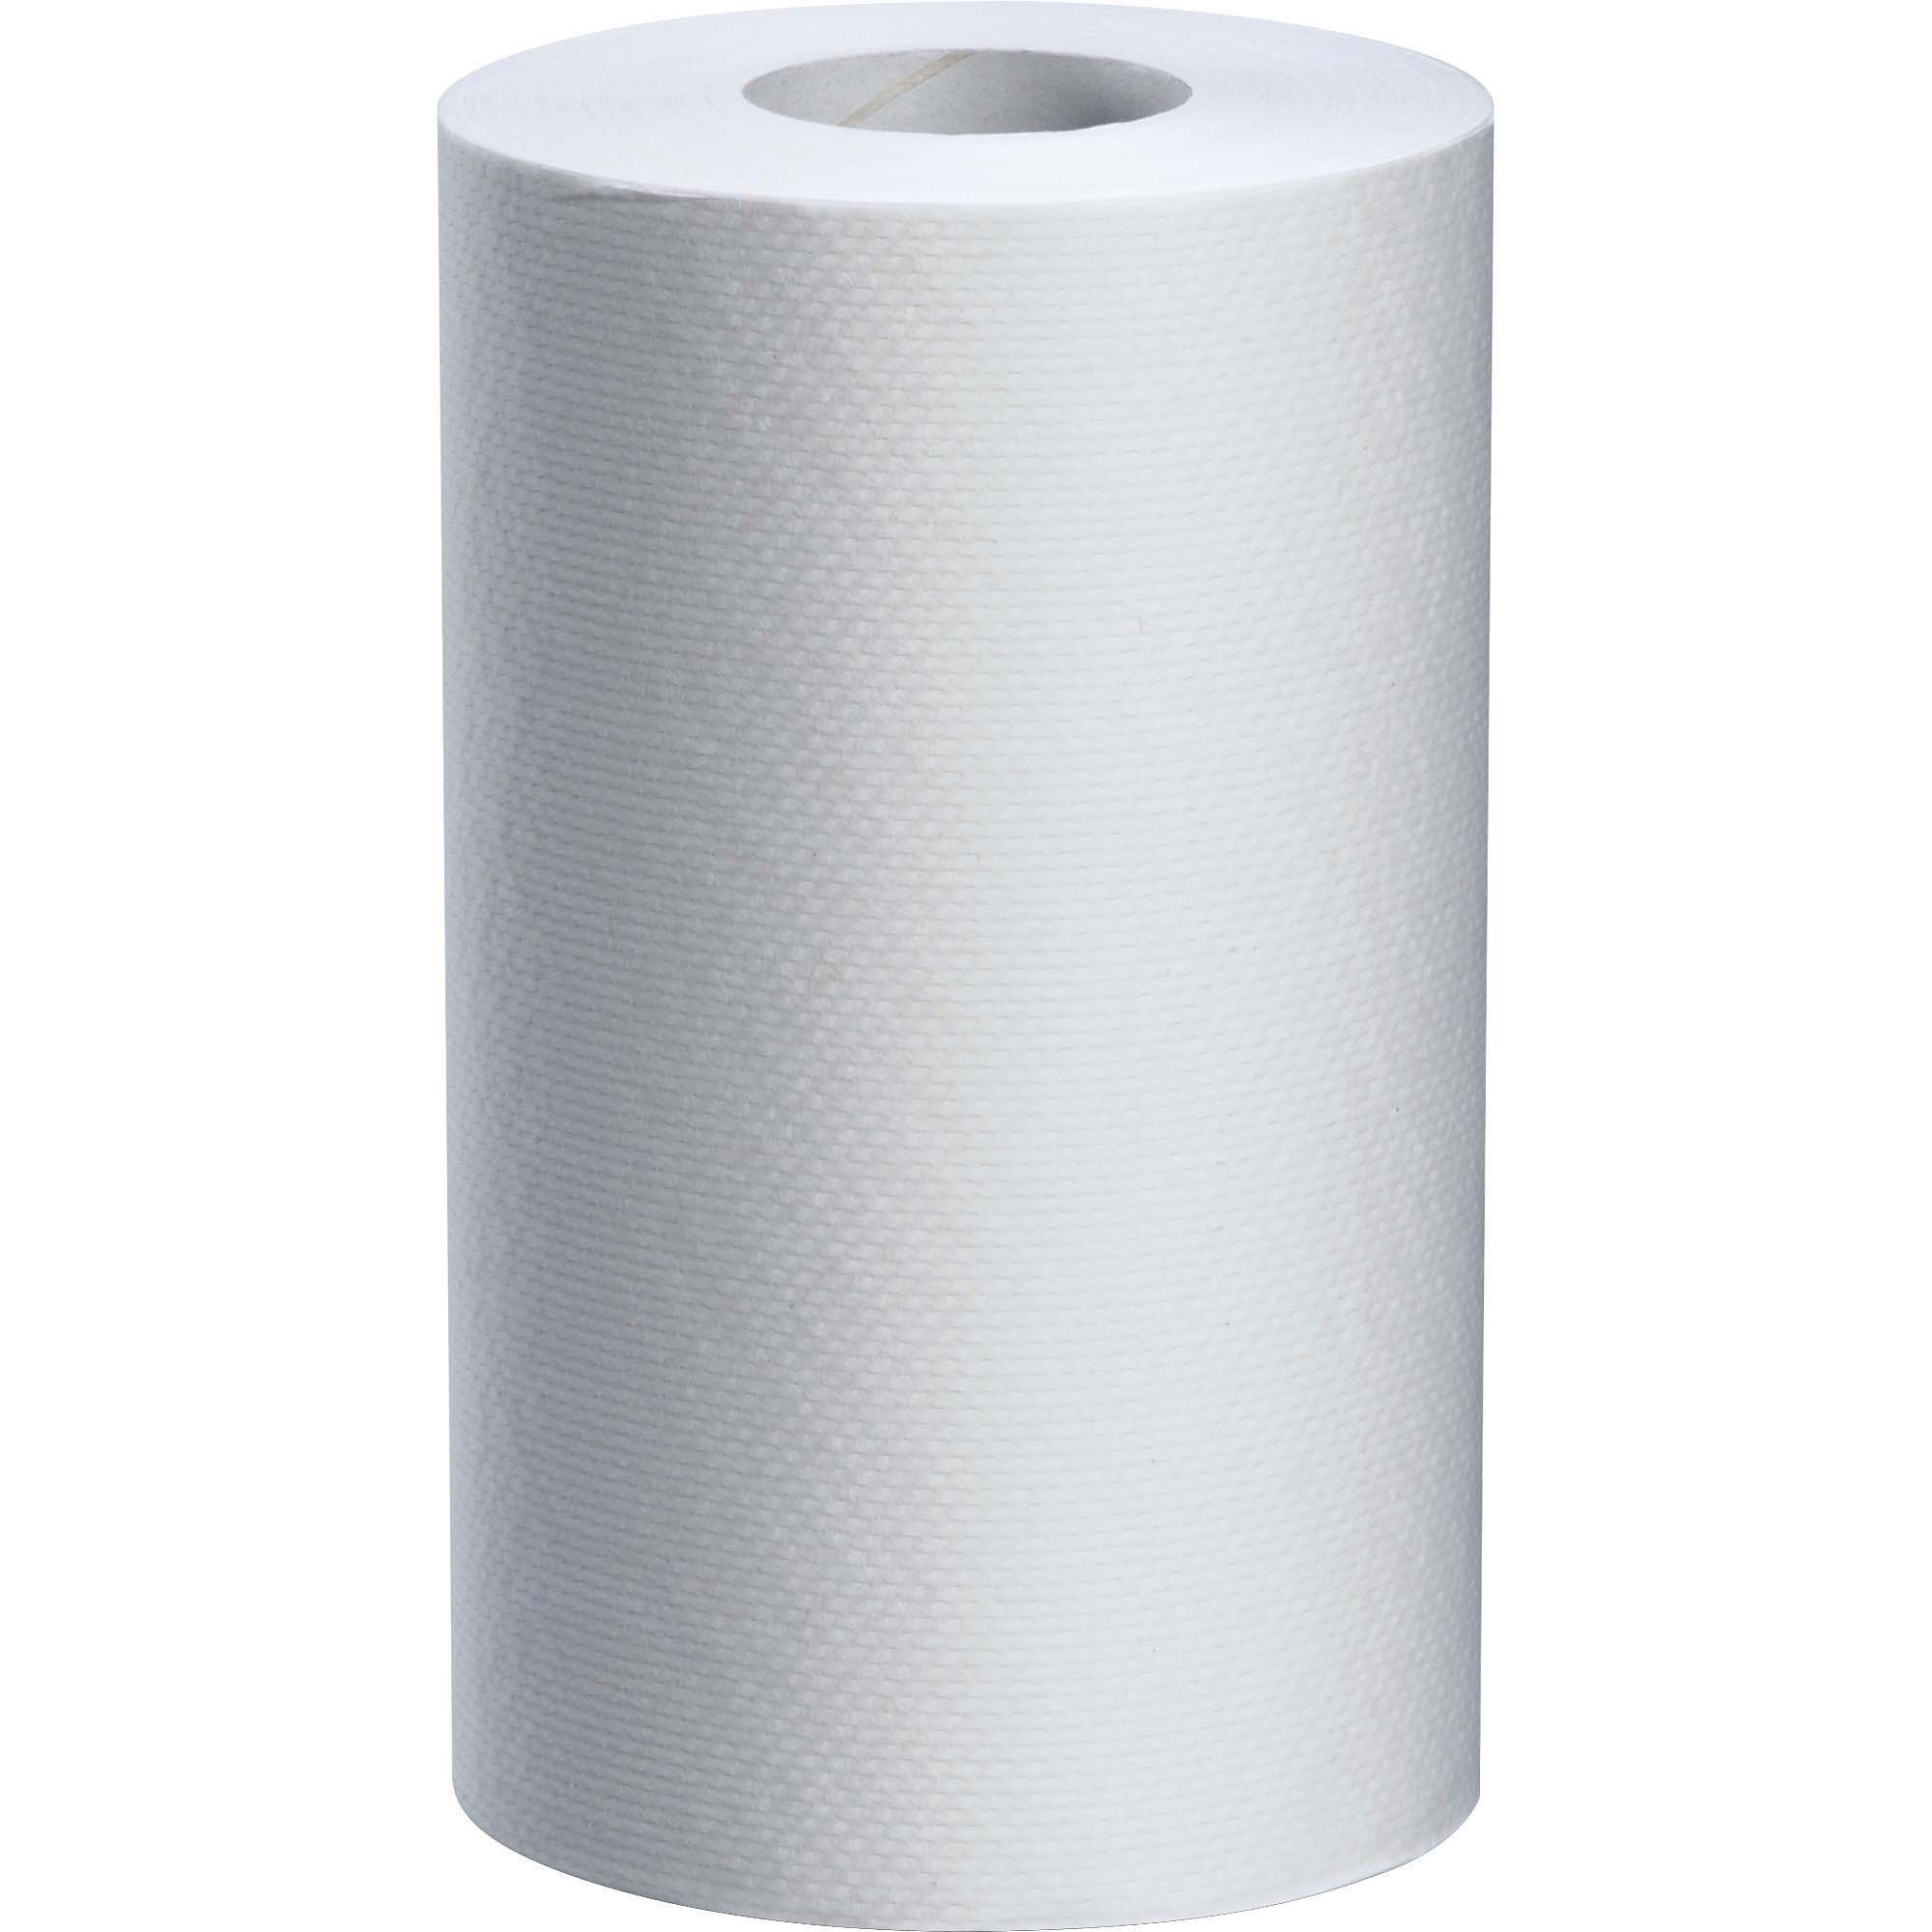 White Swan Roll Towels 1 Ply 8 X 205 Ft 24 Carton